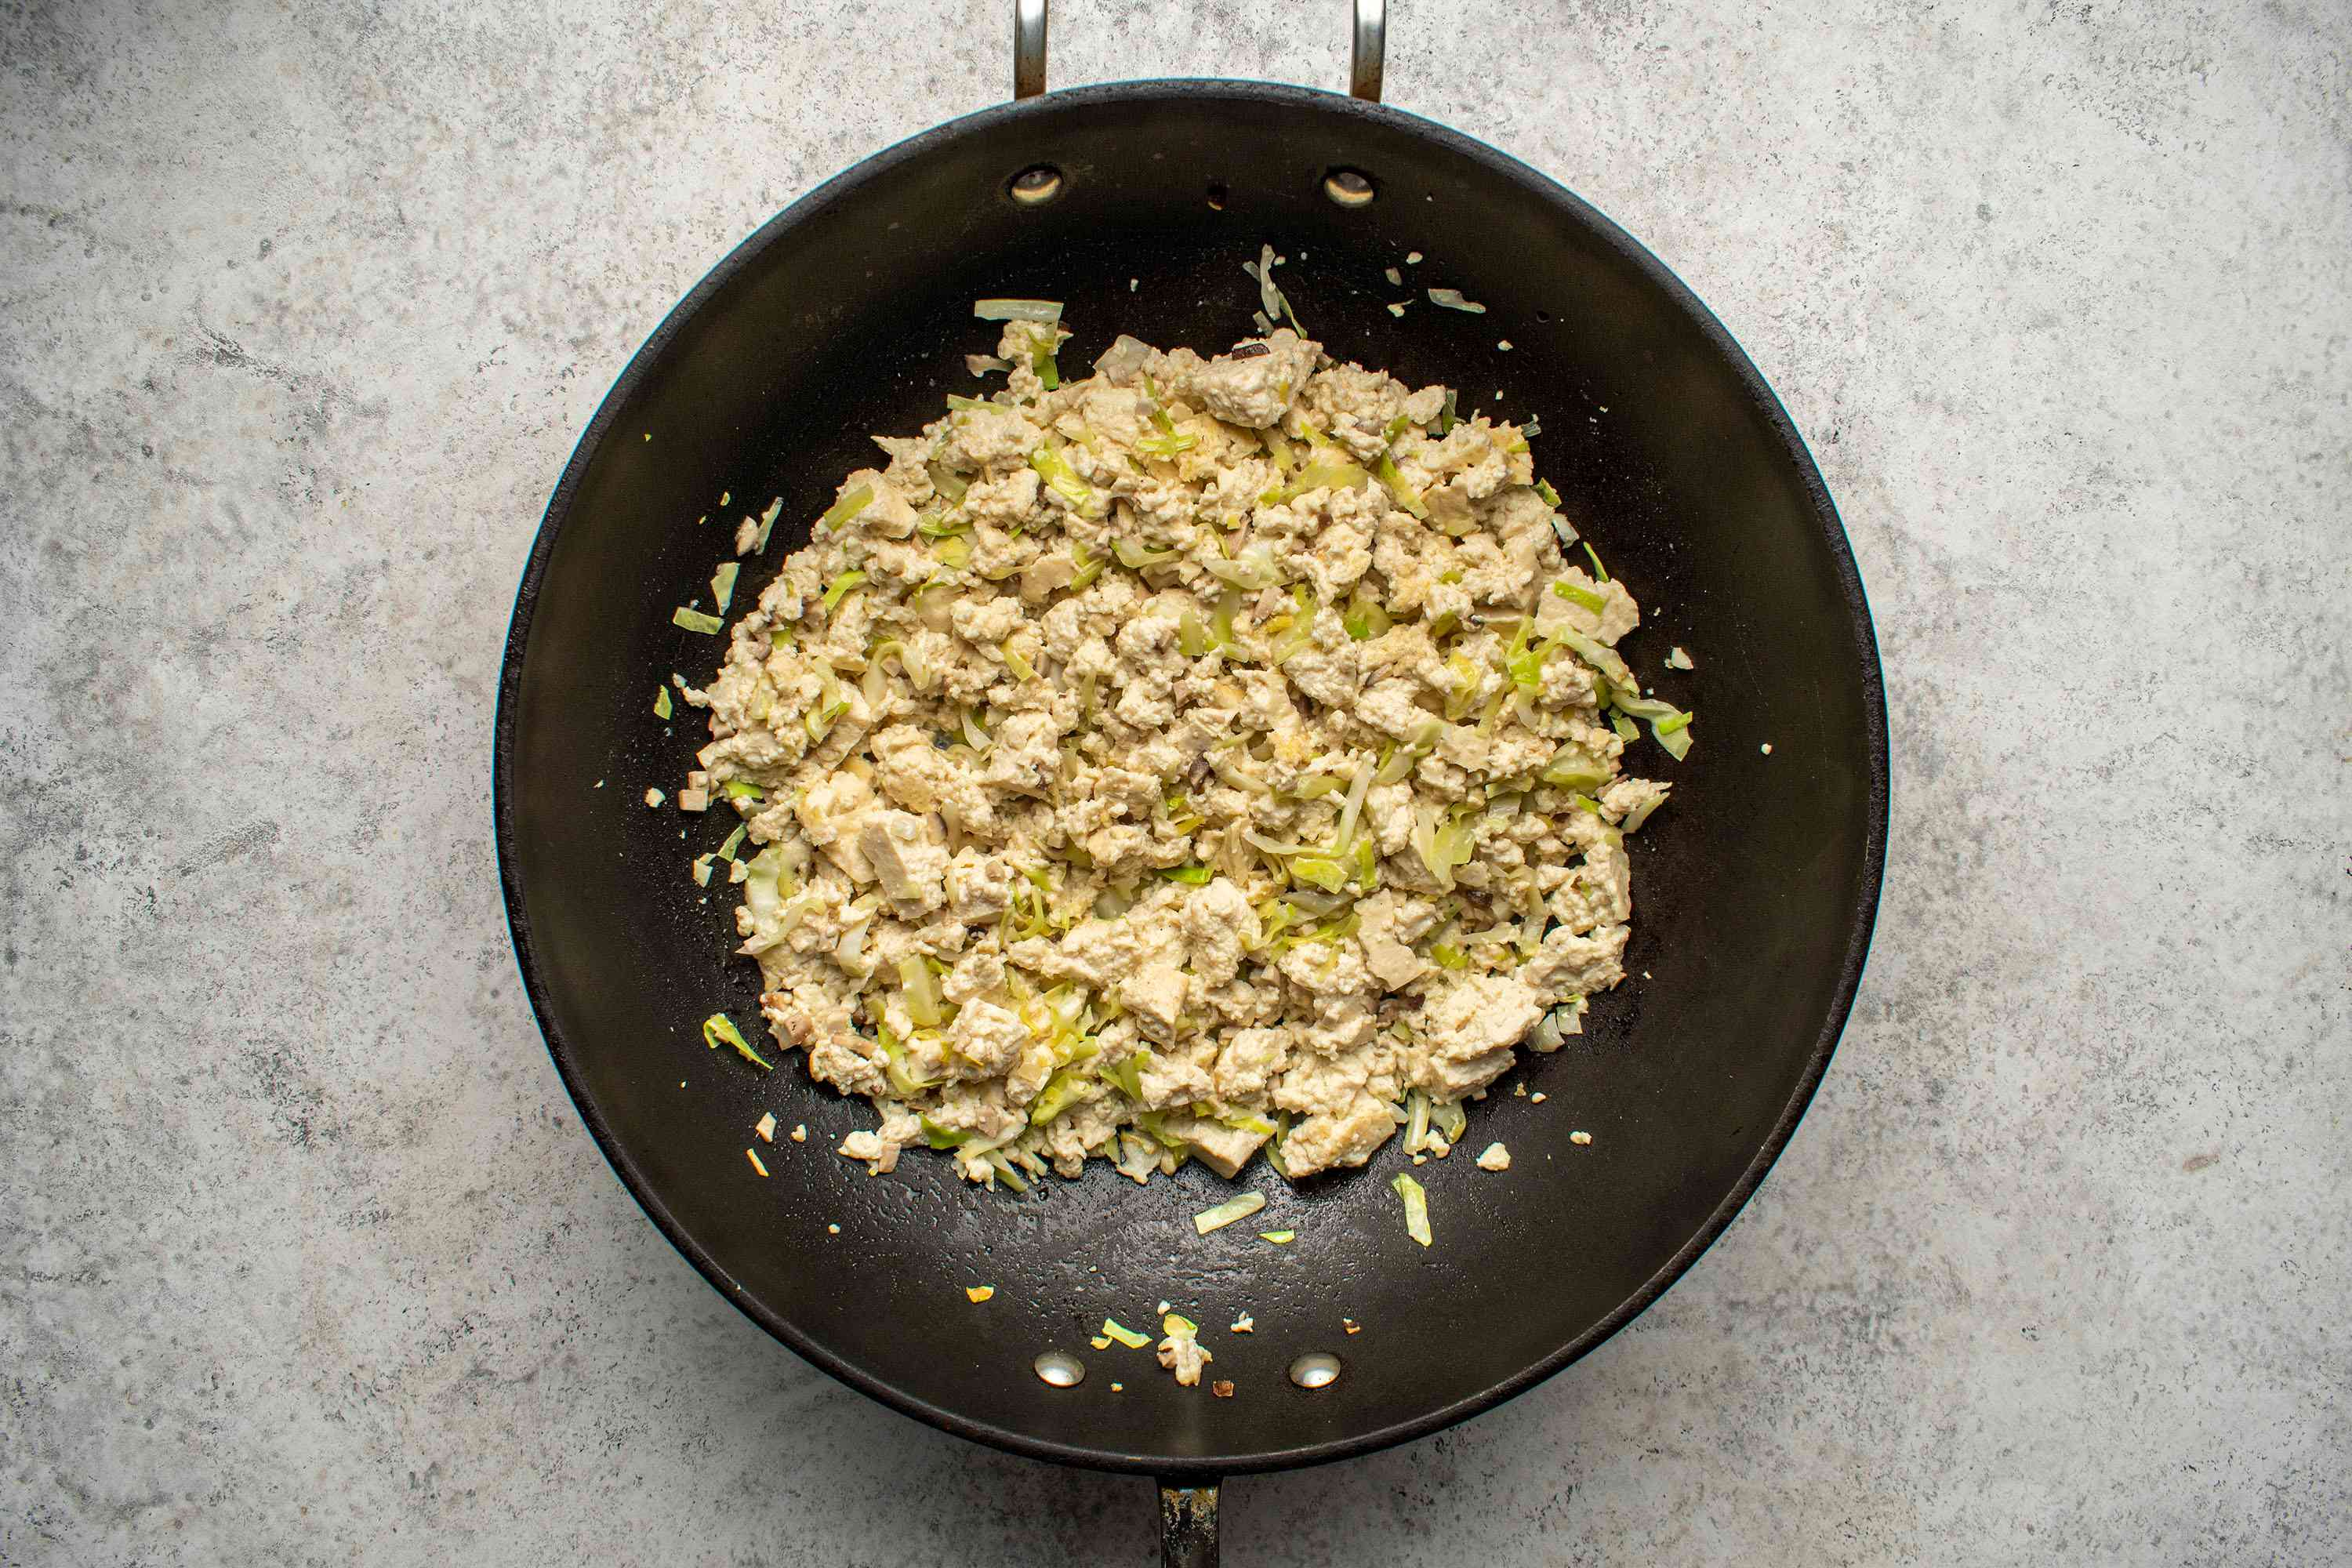 Saute the crumbled tofu, mushrooms, cabbage, ginger, and garlic in a wok